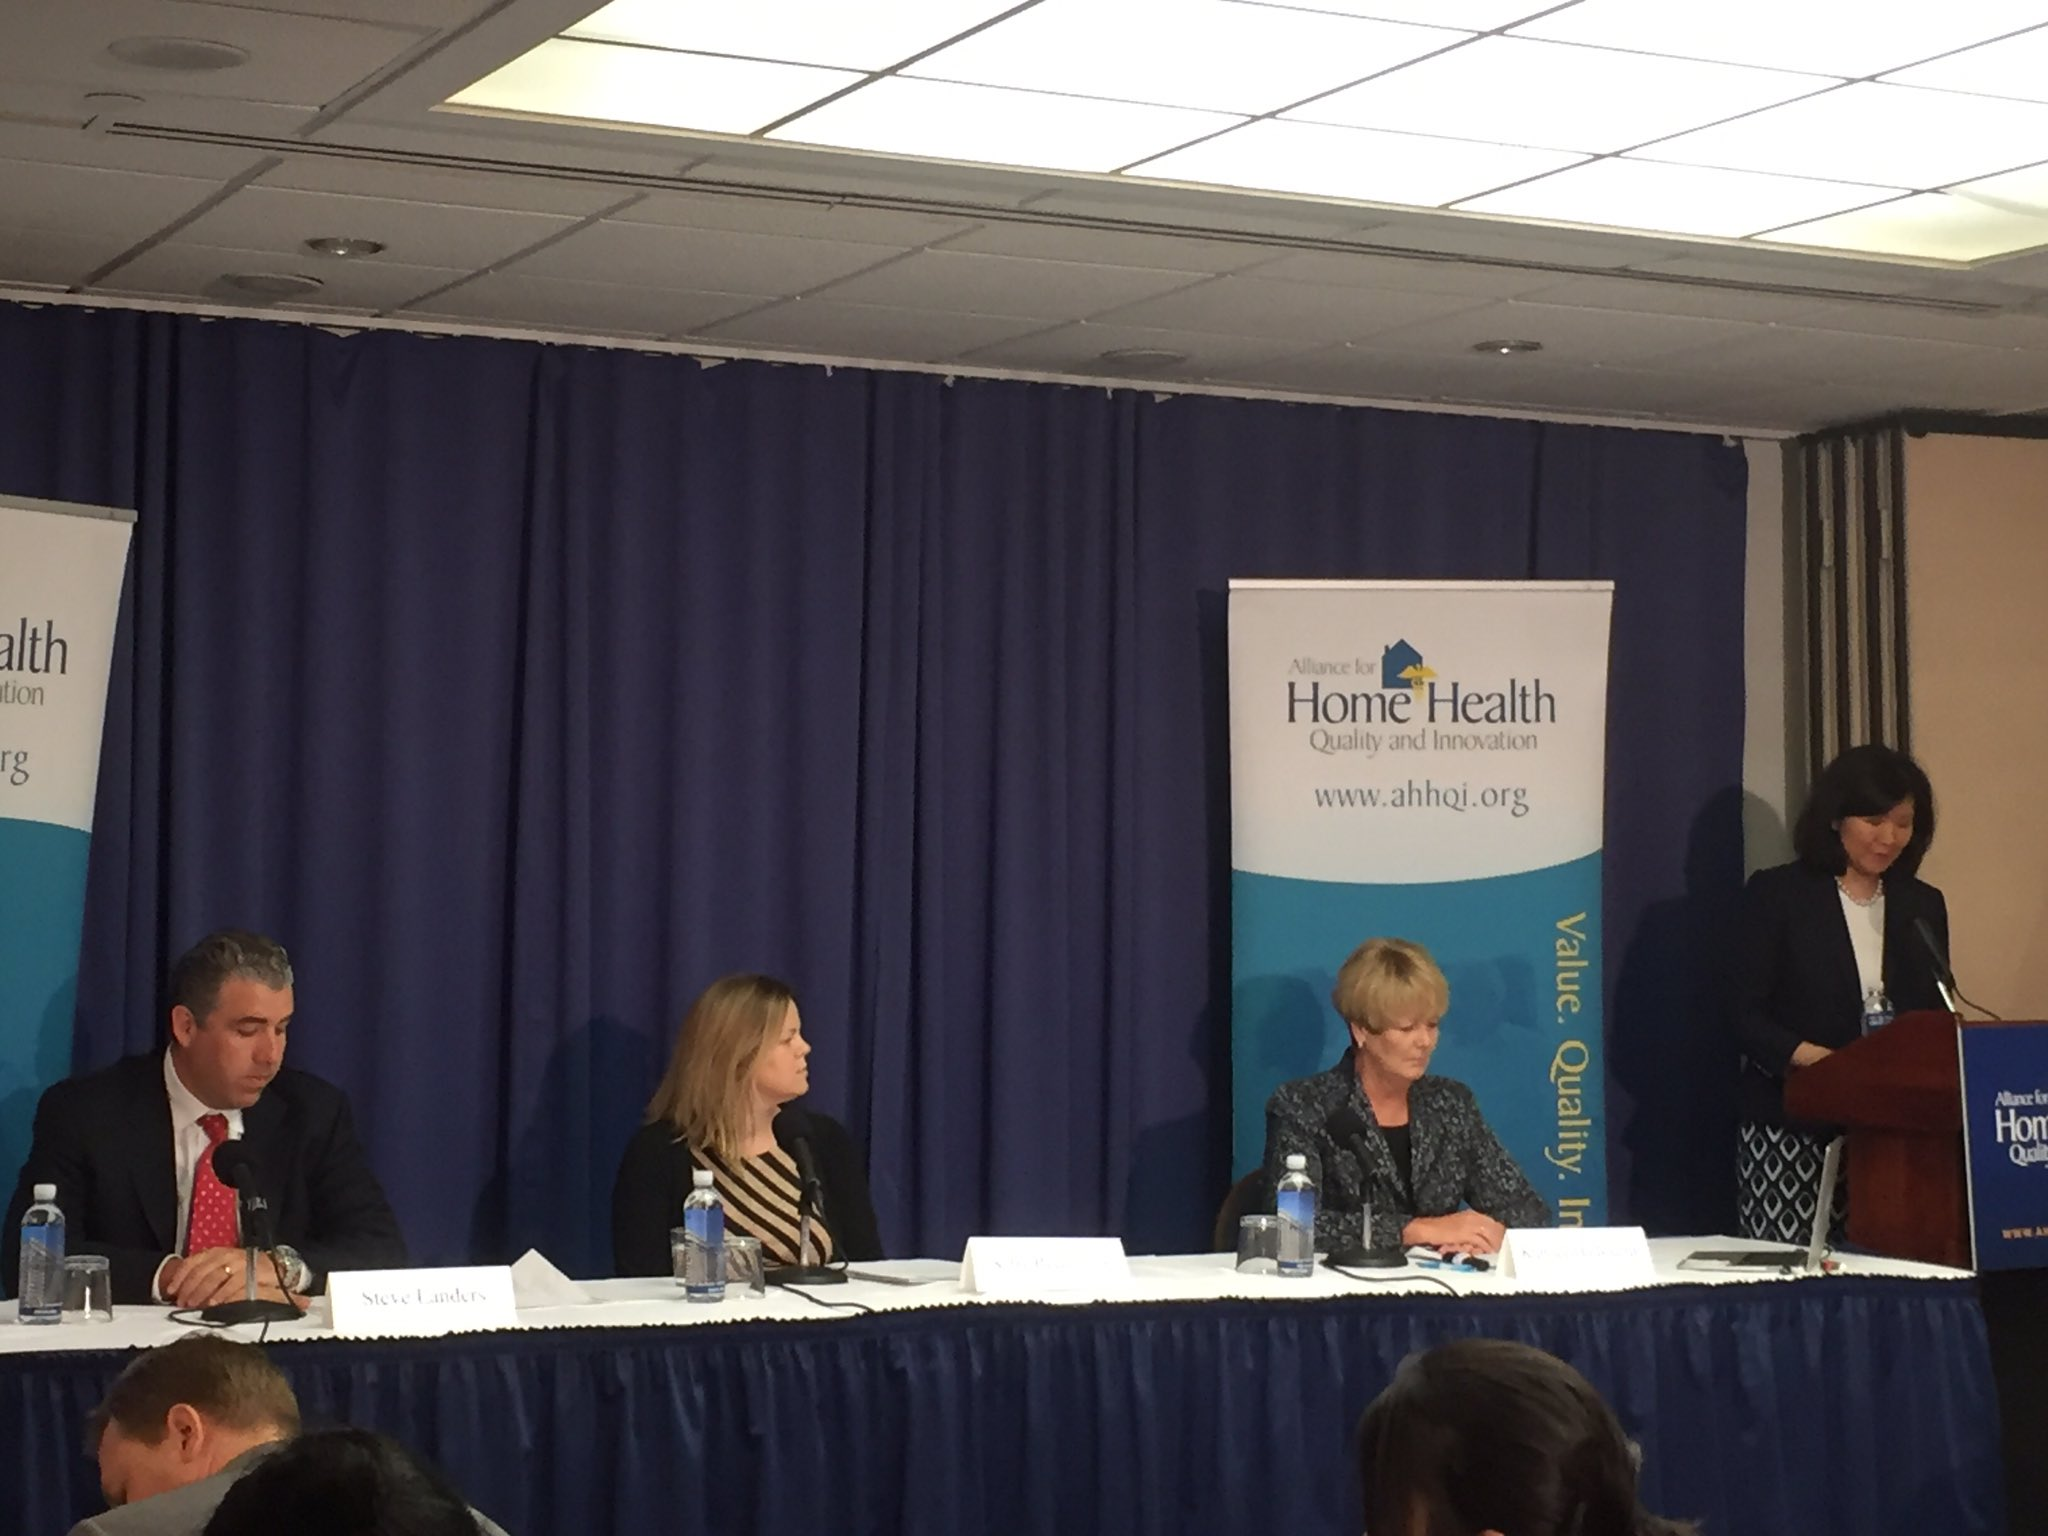 Framing the Future of Home Health in America has begun! Director @TeresaLee presenting our speakers. #FutureofHH https://t.co/R4xgAXJVhC